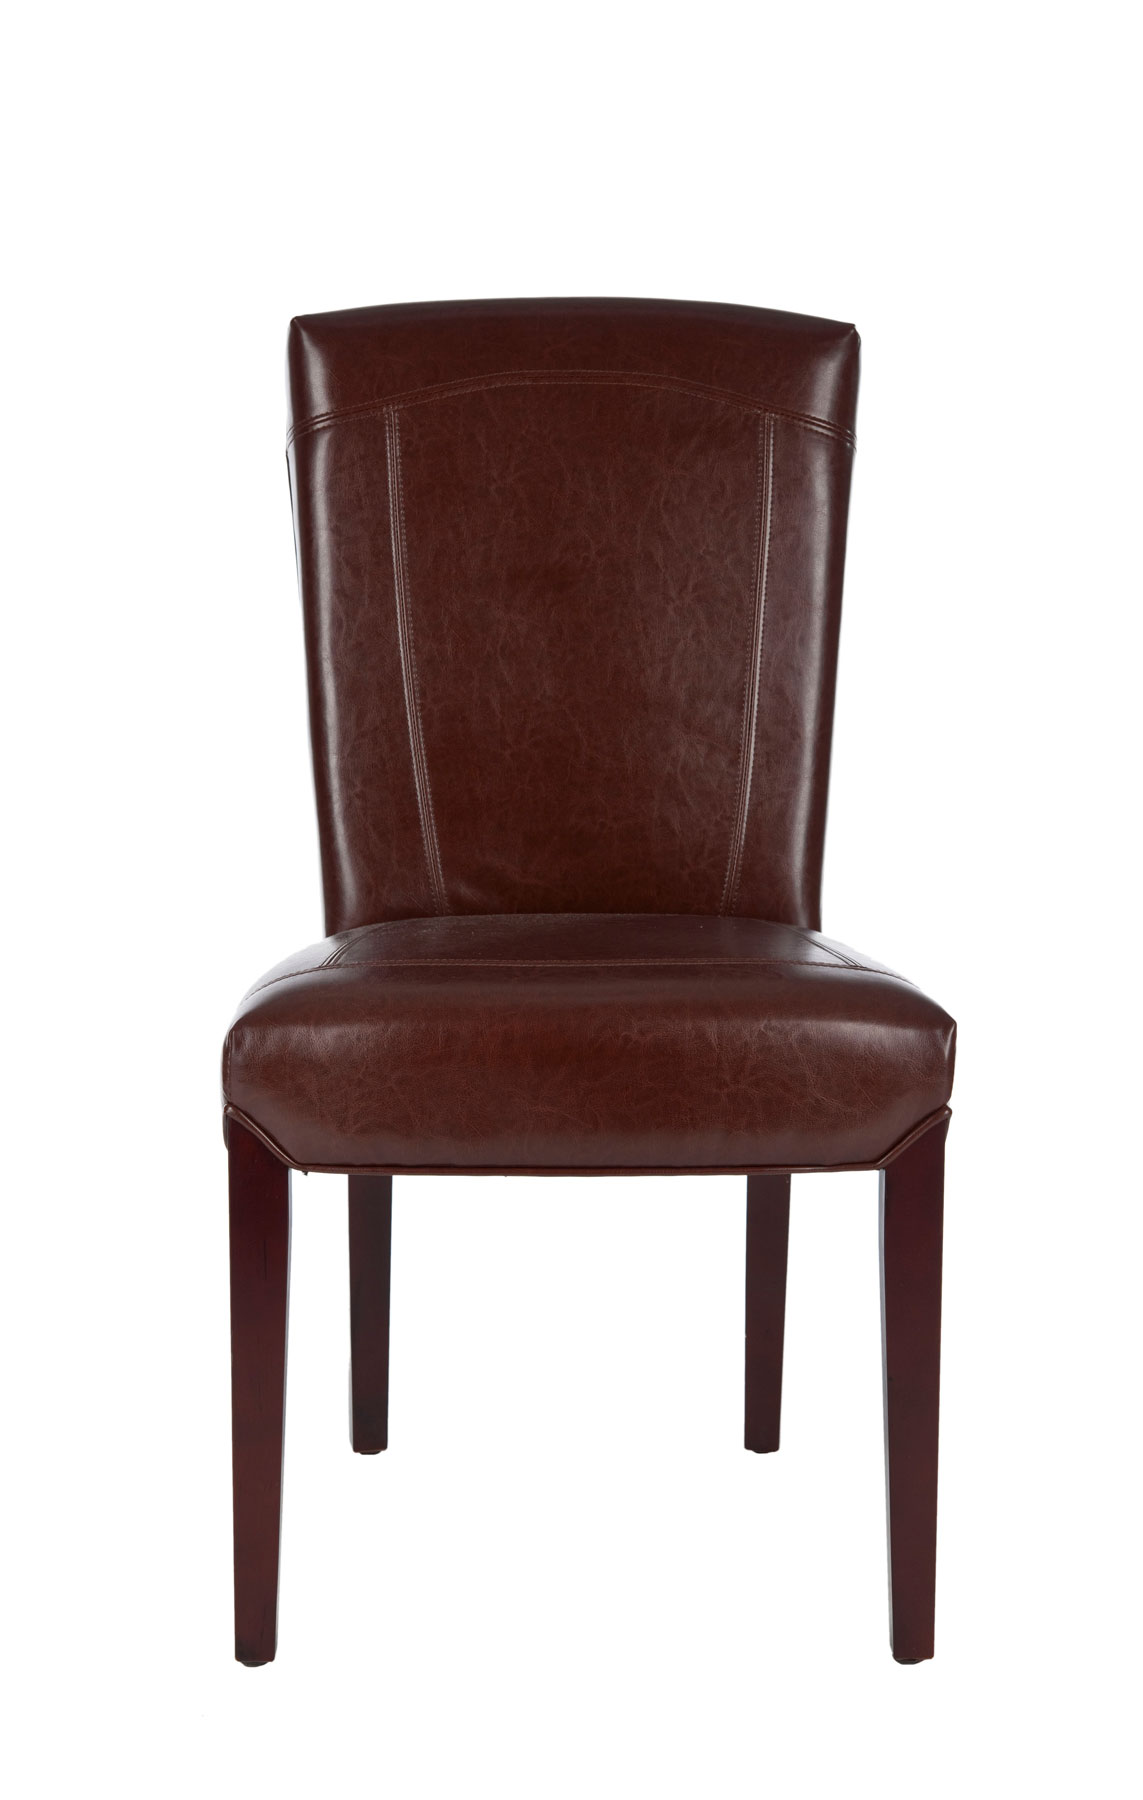 safavieh dining chairs stretch chair covers uk hud8200a set2 furniture by